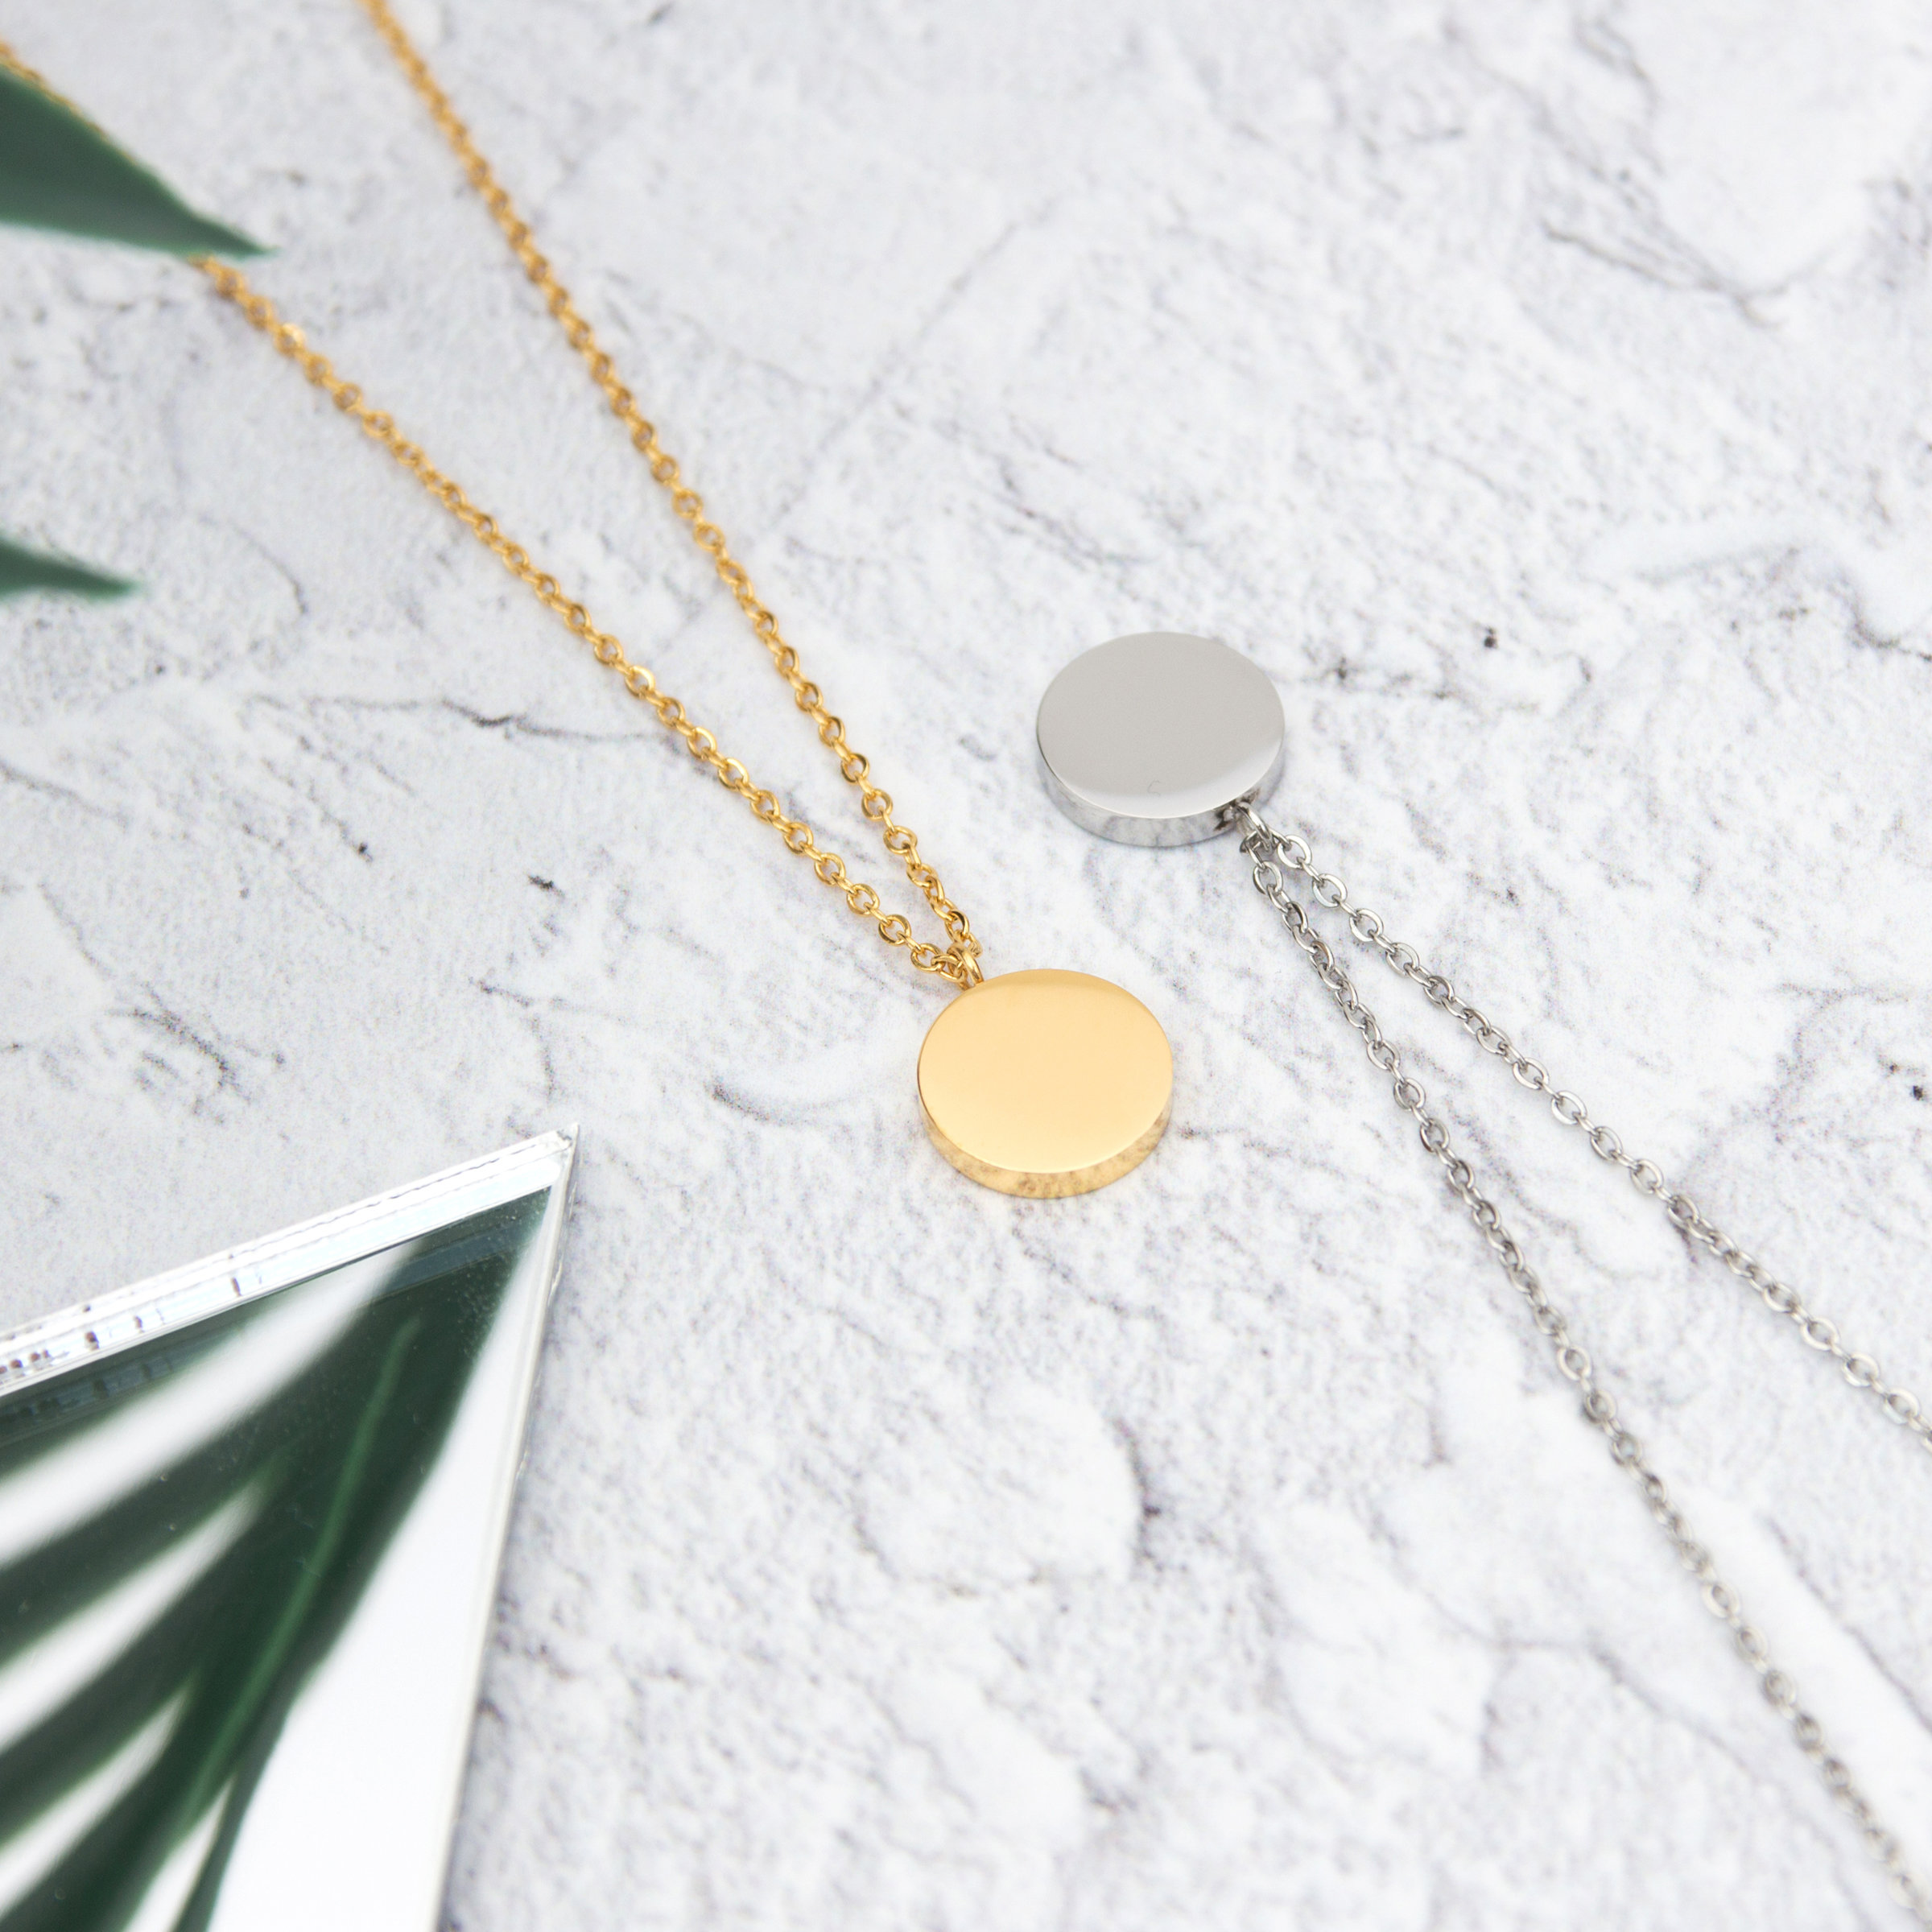 Kuku gold and silver circle necklace